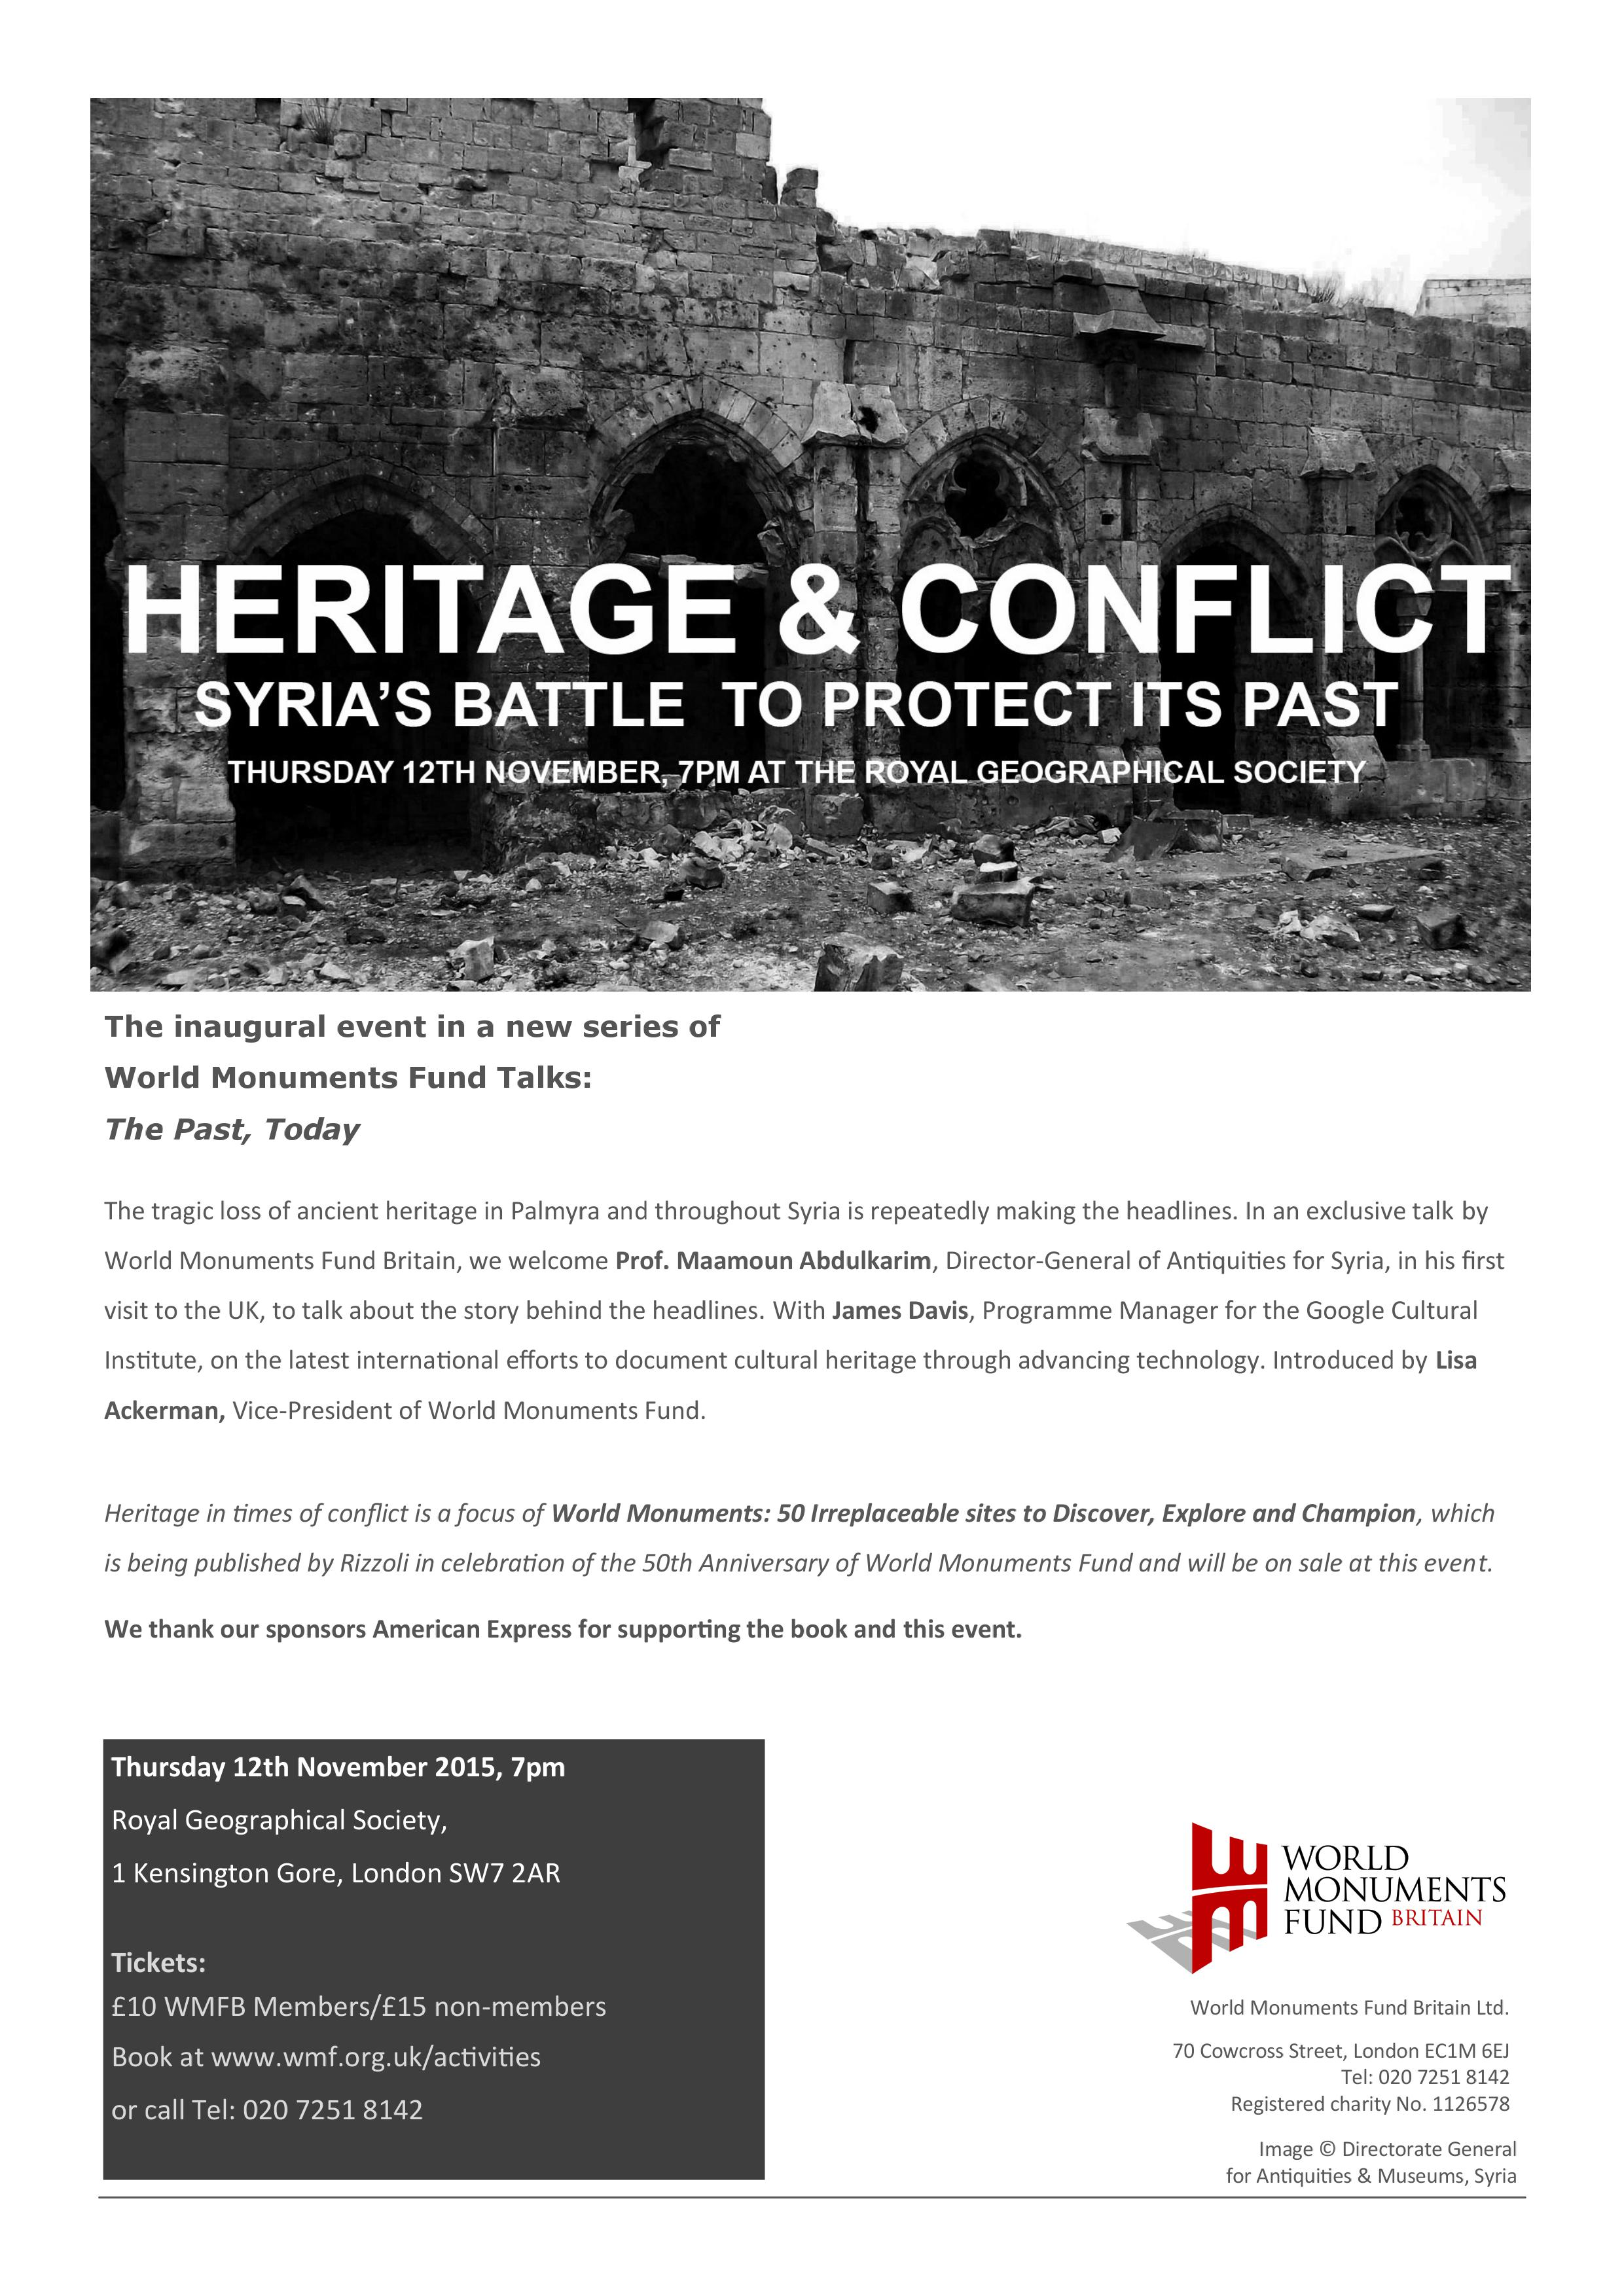 Heritage and Conflict A4 poster